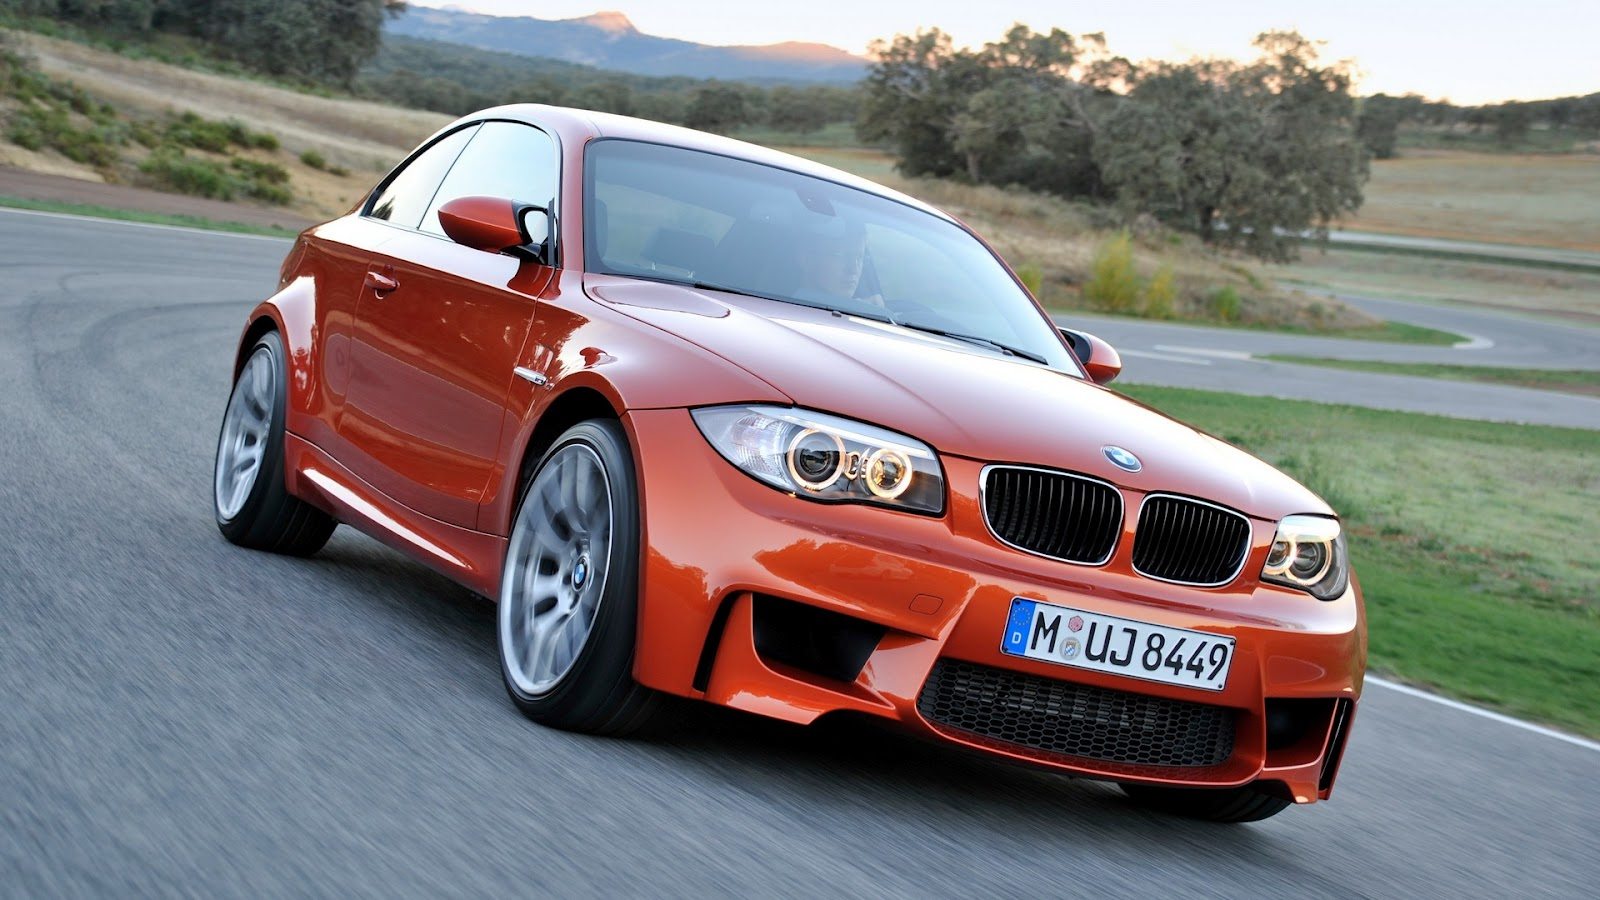 free cars hd bmw m1 hd wallpapers. Black Bedroom Furniture Sets. Home Design Ideas